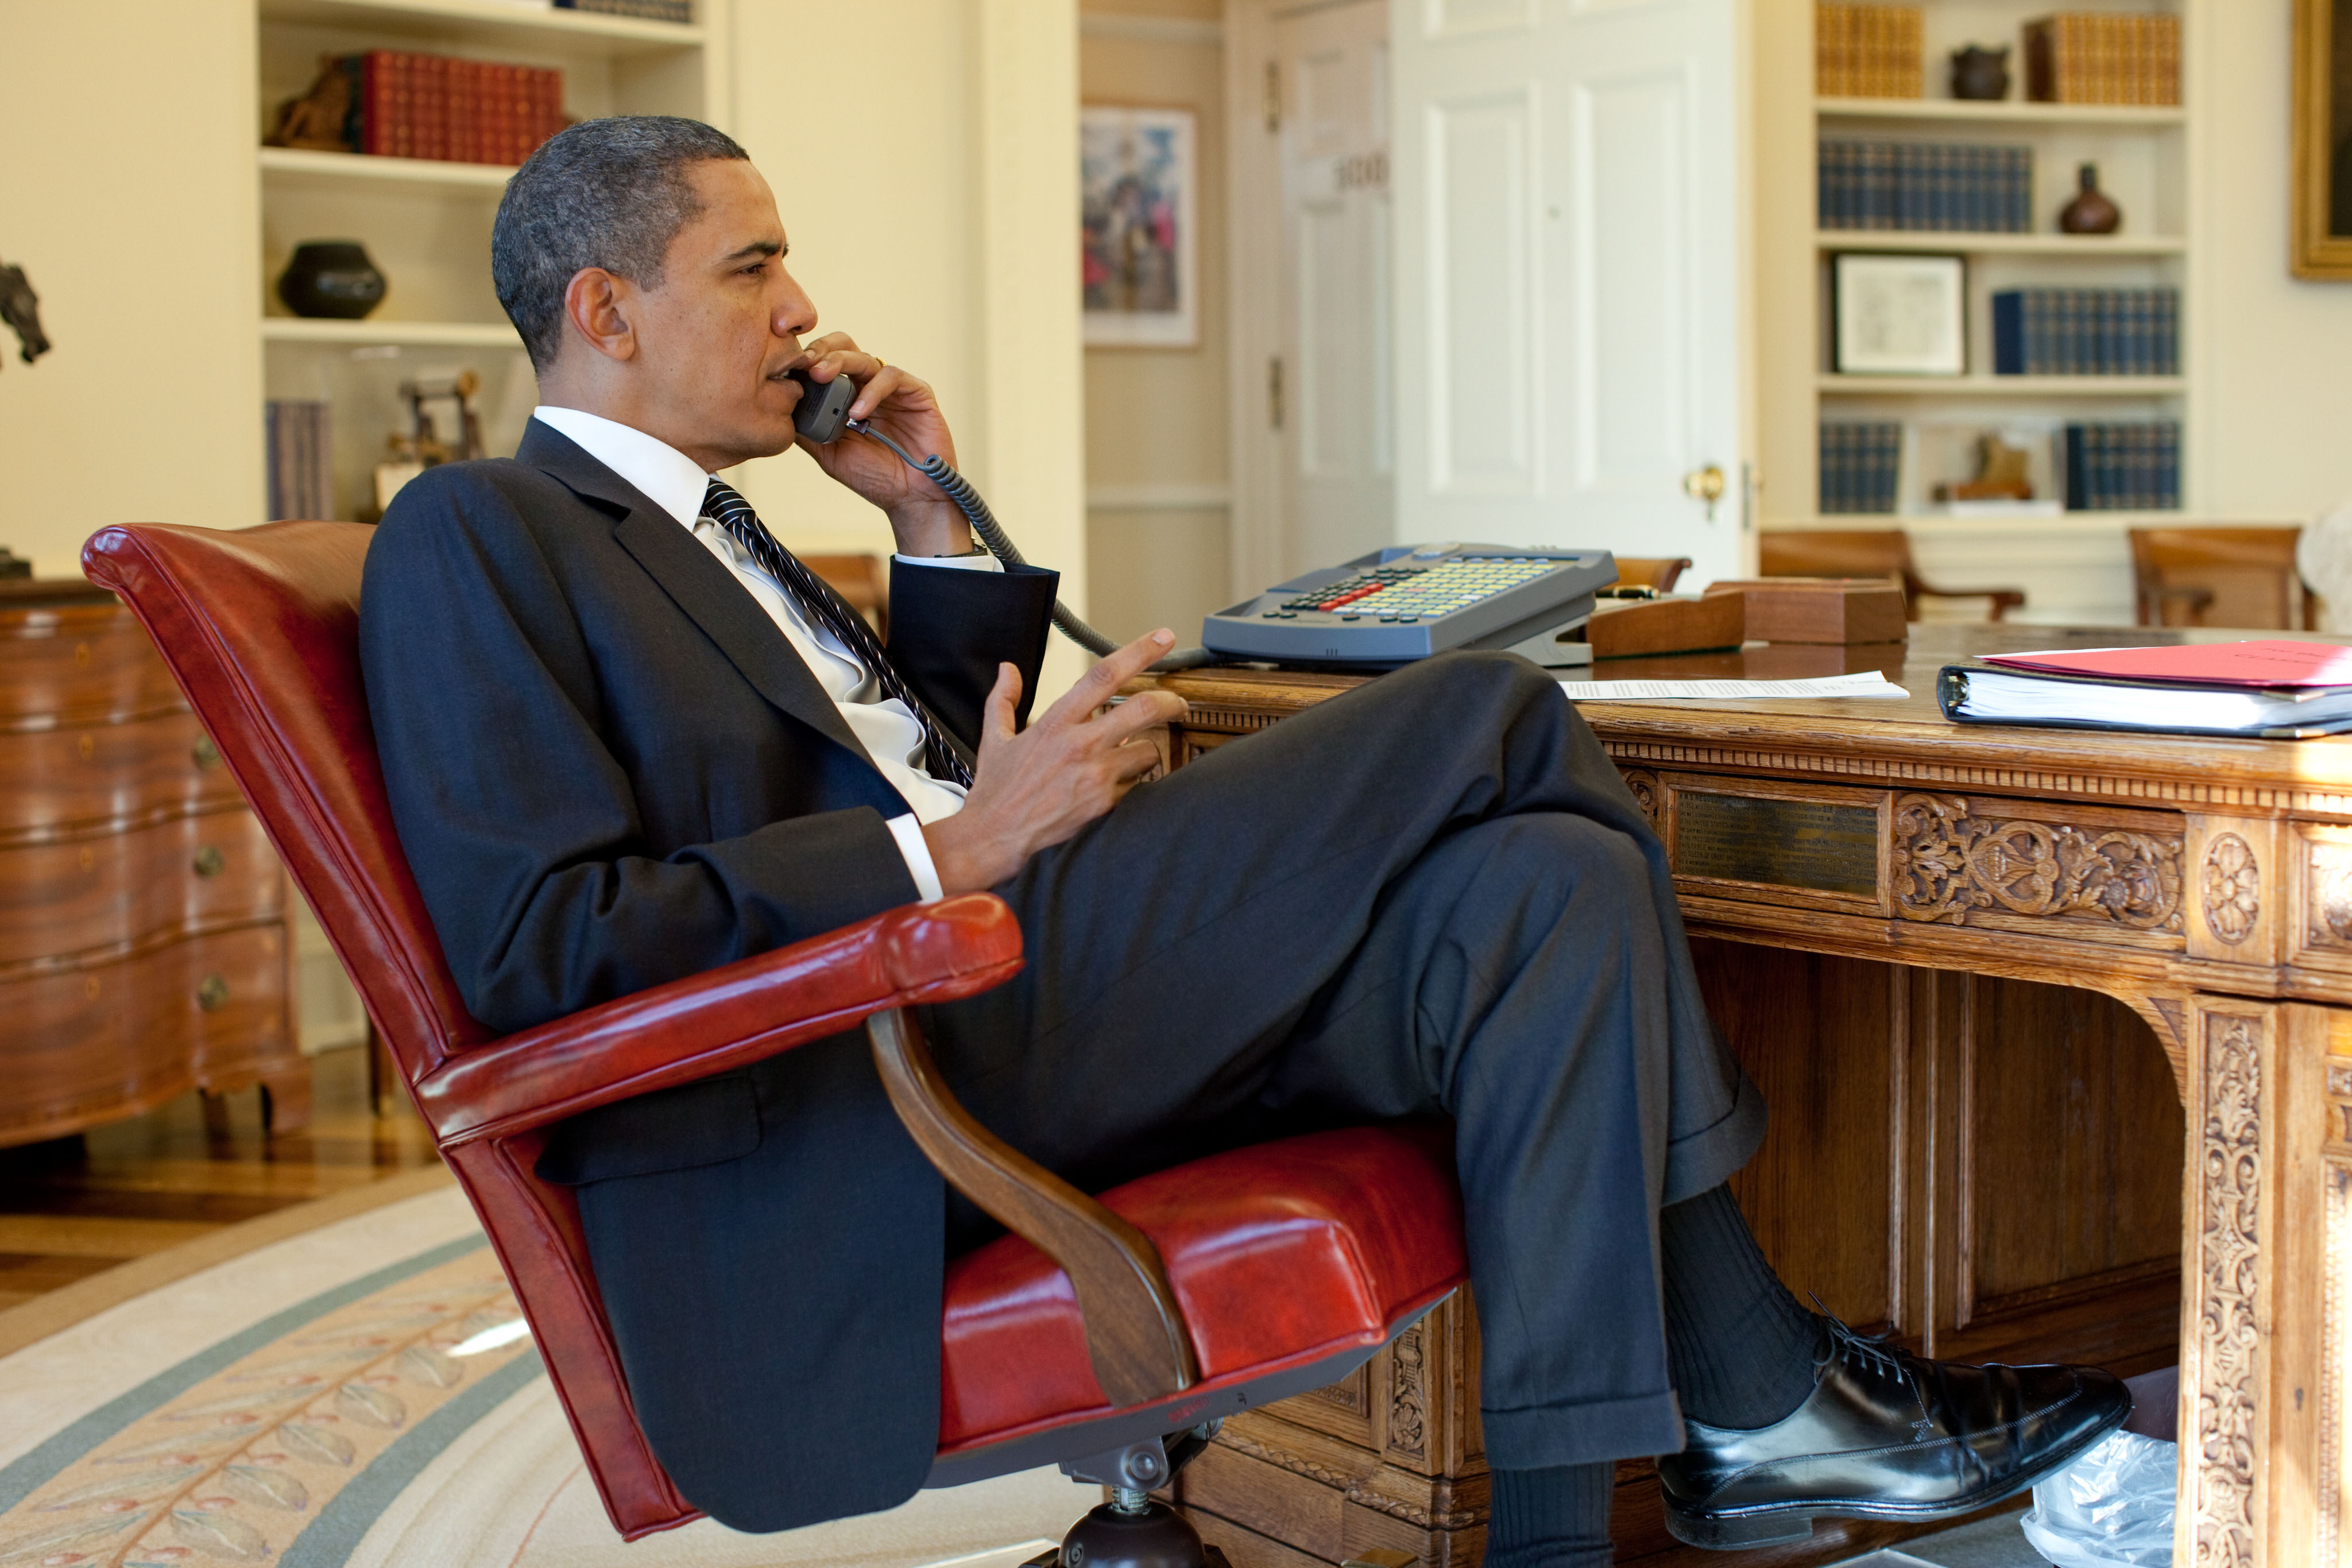 Obama Resolute Desk File Barack Obama On The Phone In The Oval Office With